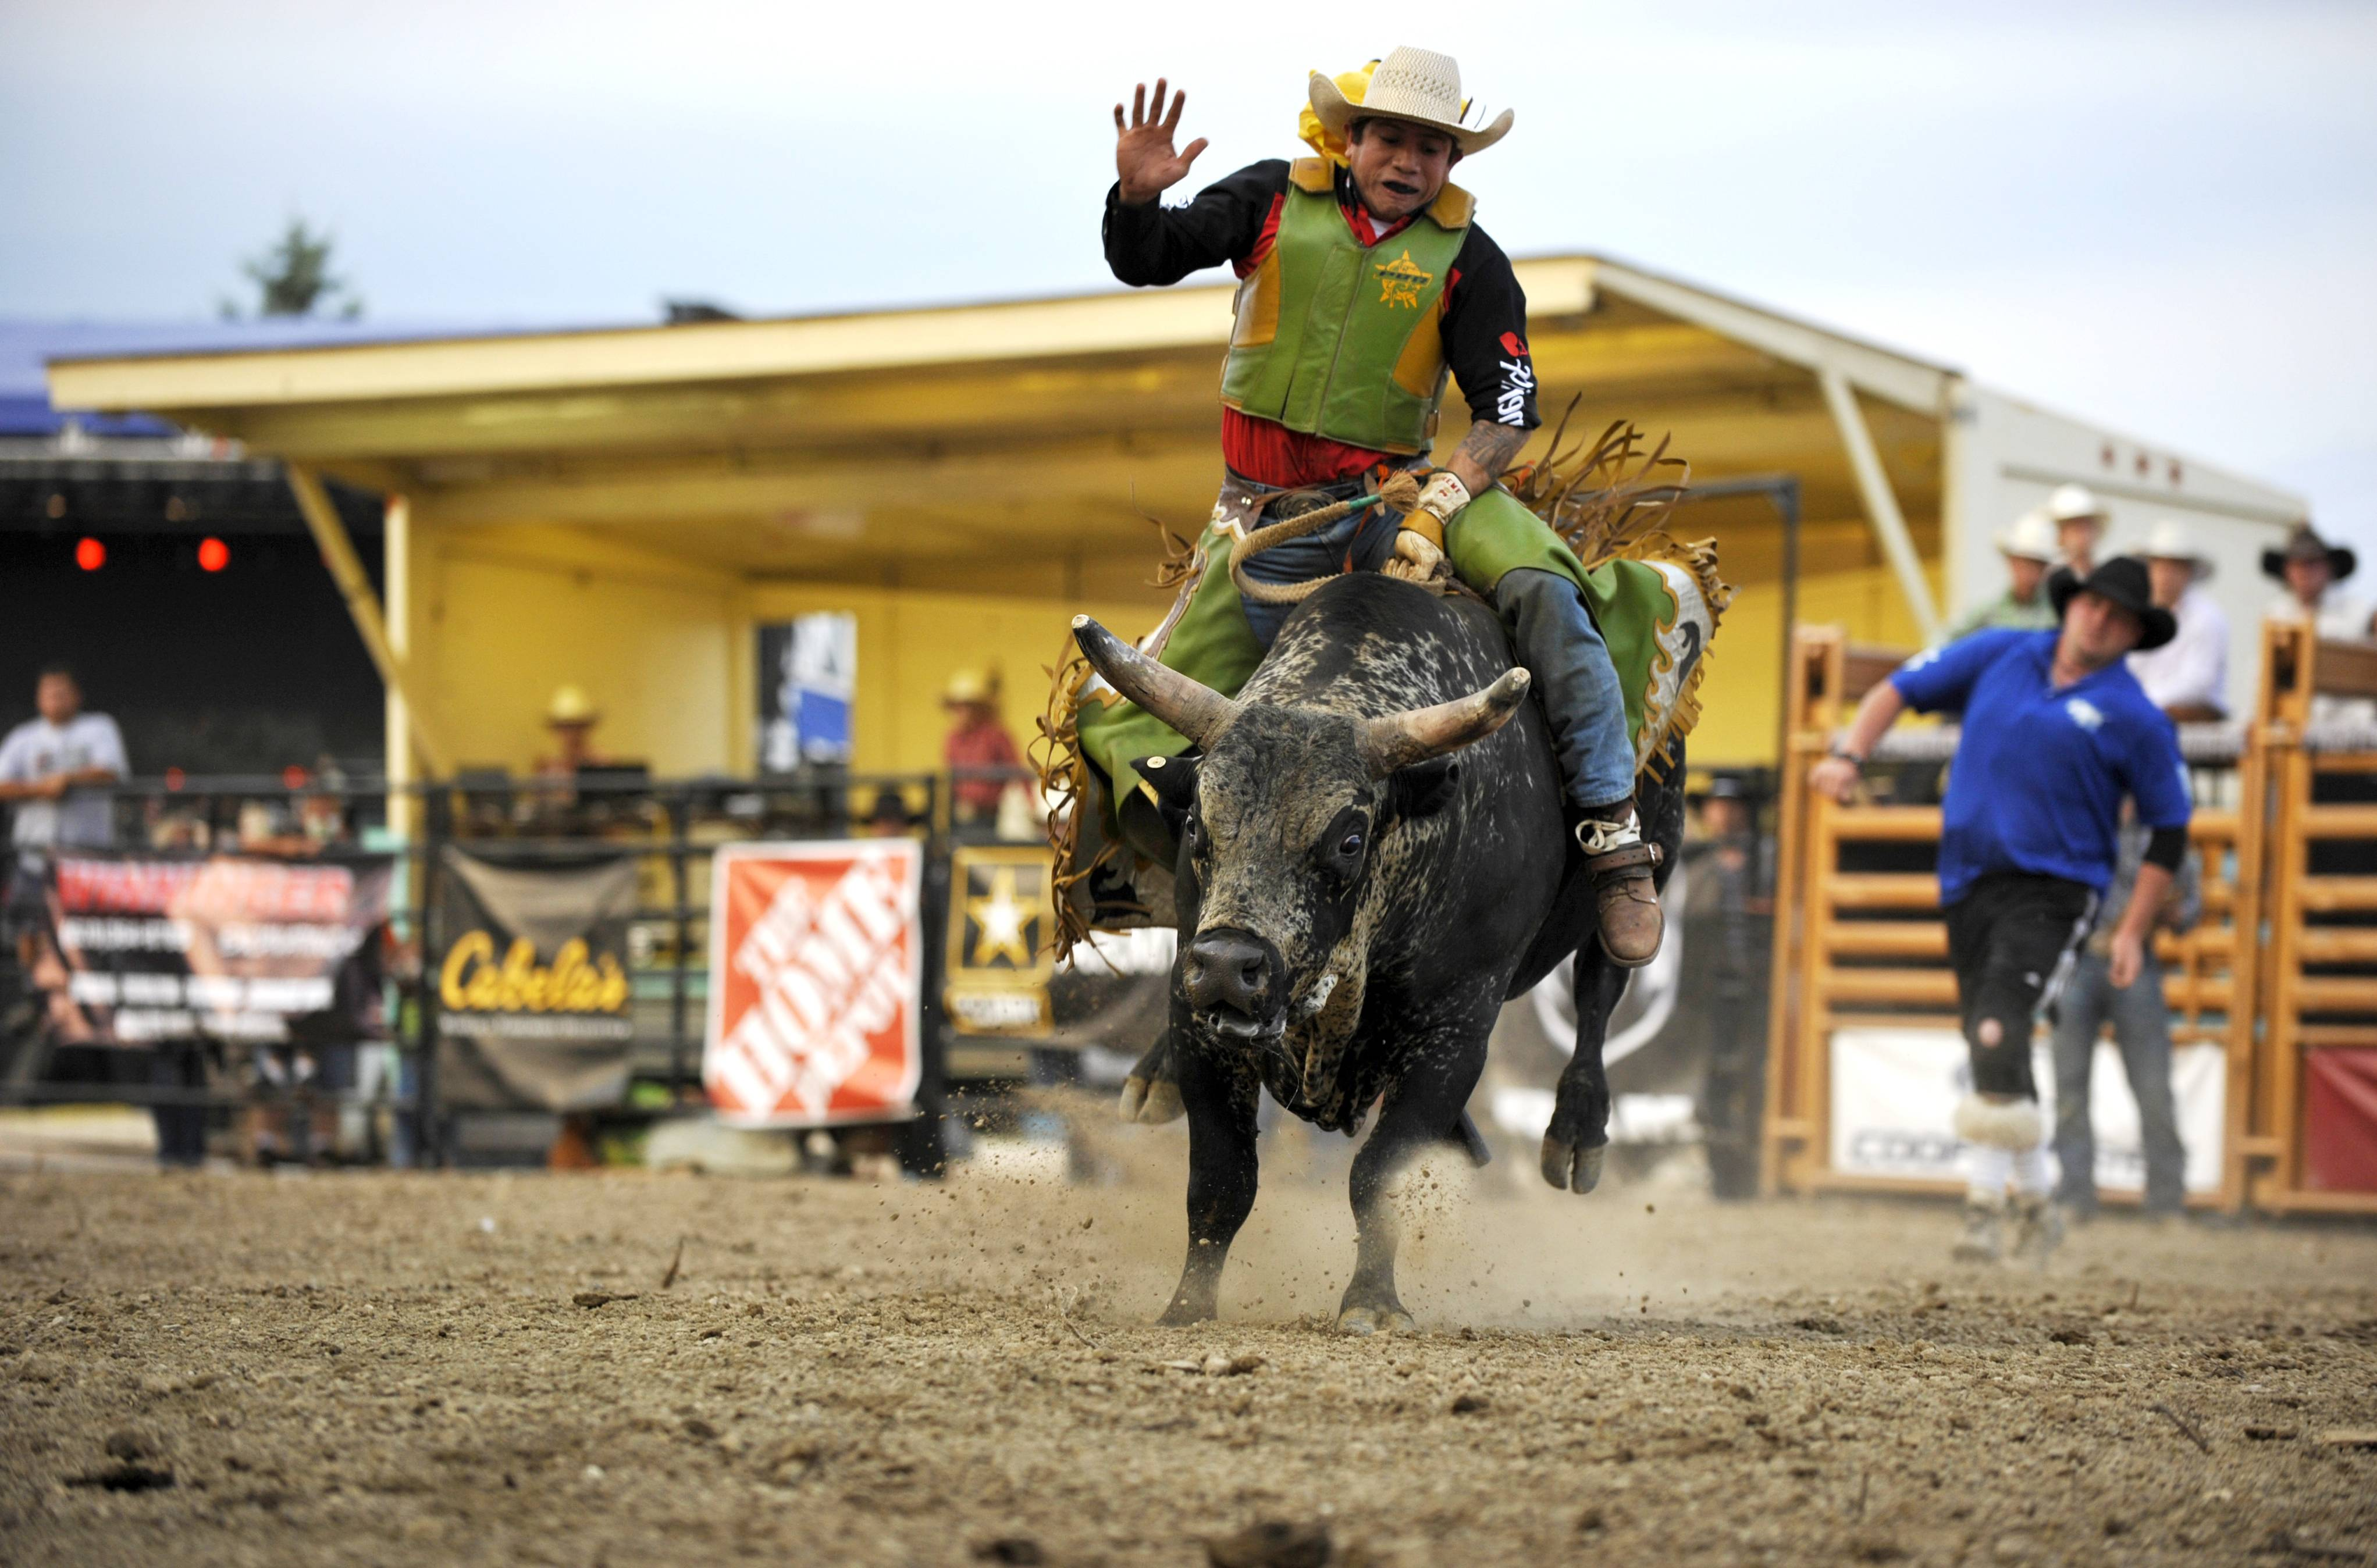 Brooke Herbert Hayes/bhayes@dailyherald.comOsman Alvarez of Charlotte, North Carolina, tries to ride for the required eight seconds during the Professional Championship Bullriding at the Kane County Fair at the Fairgrounds in St. Charles on Friday. Alvarez is originally from Nicaragua and competes as a bullrider all over the U.S.